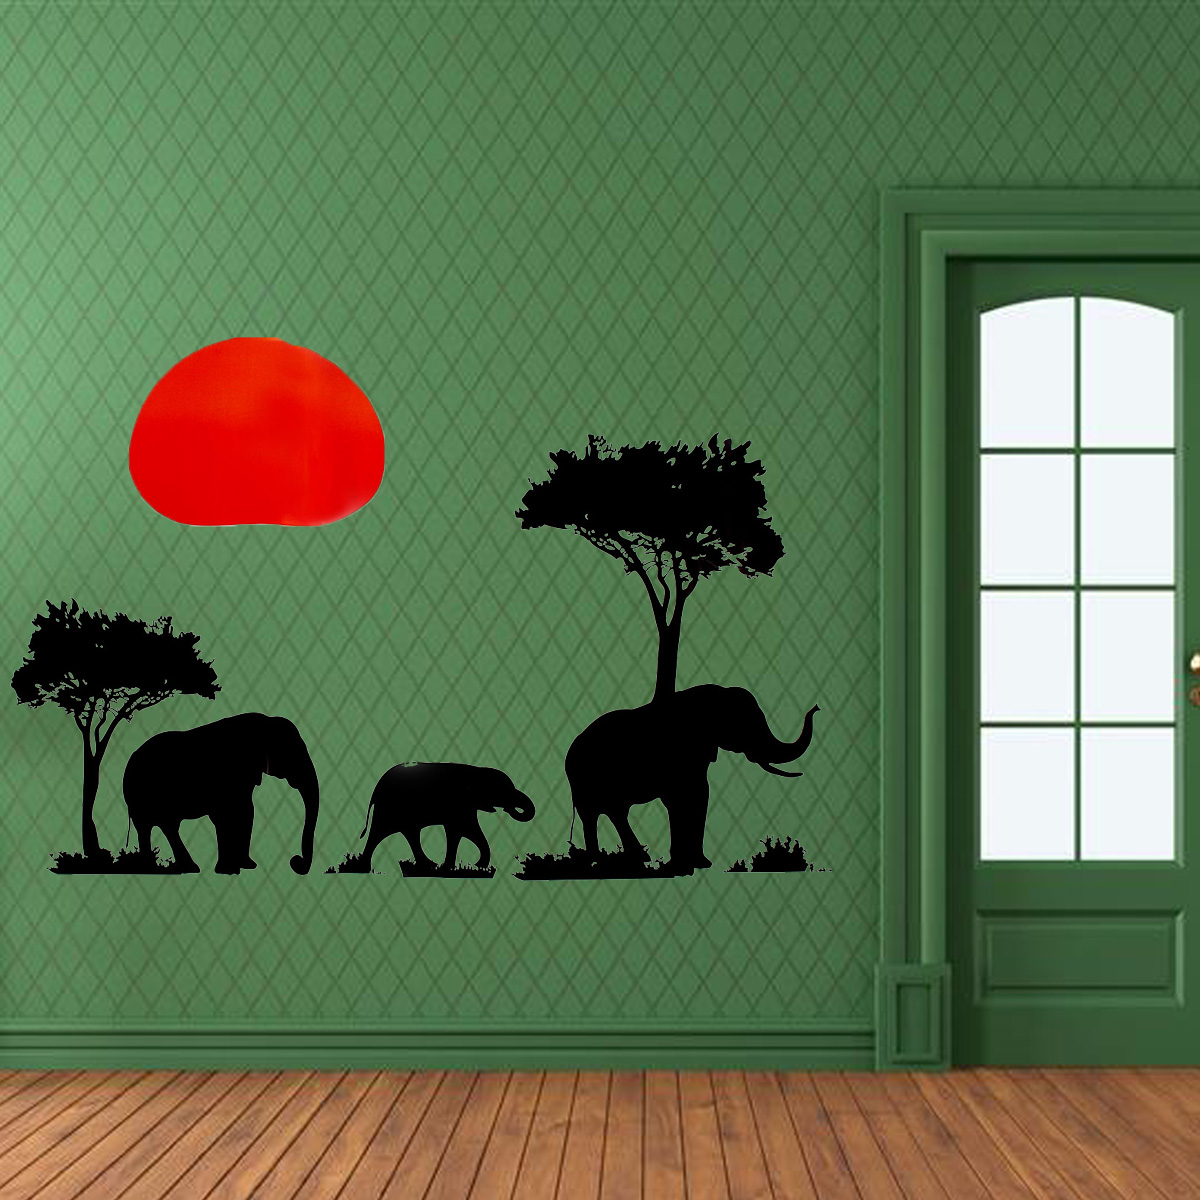 Removable african elephant wall sticker tree sunset mural African elephant home decor